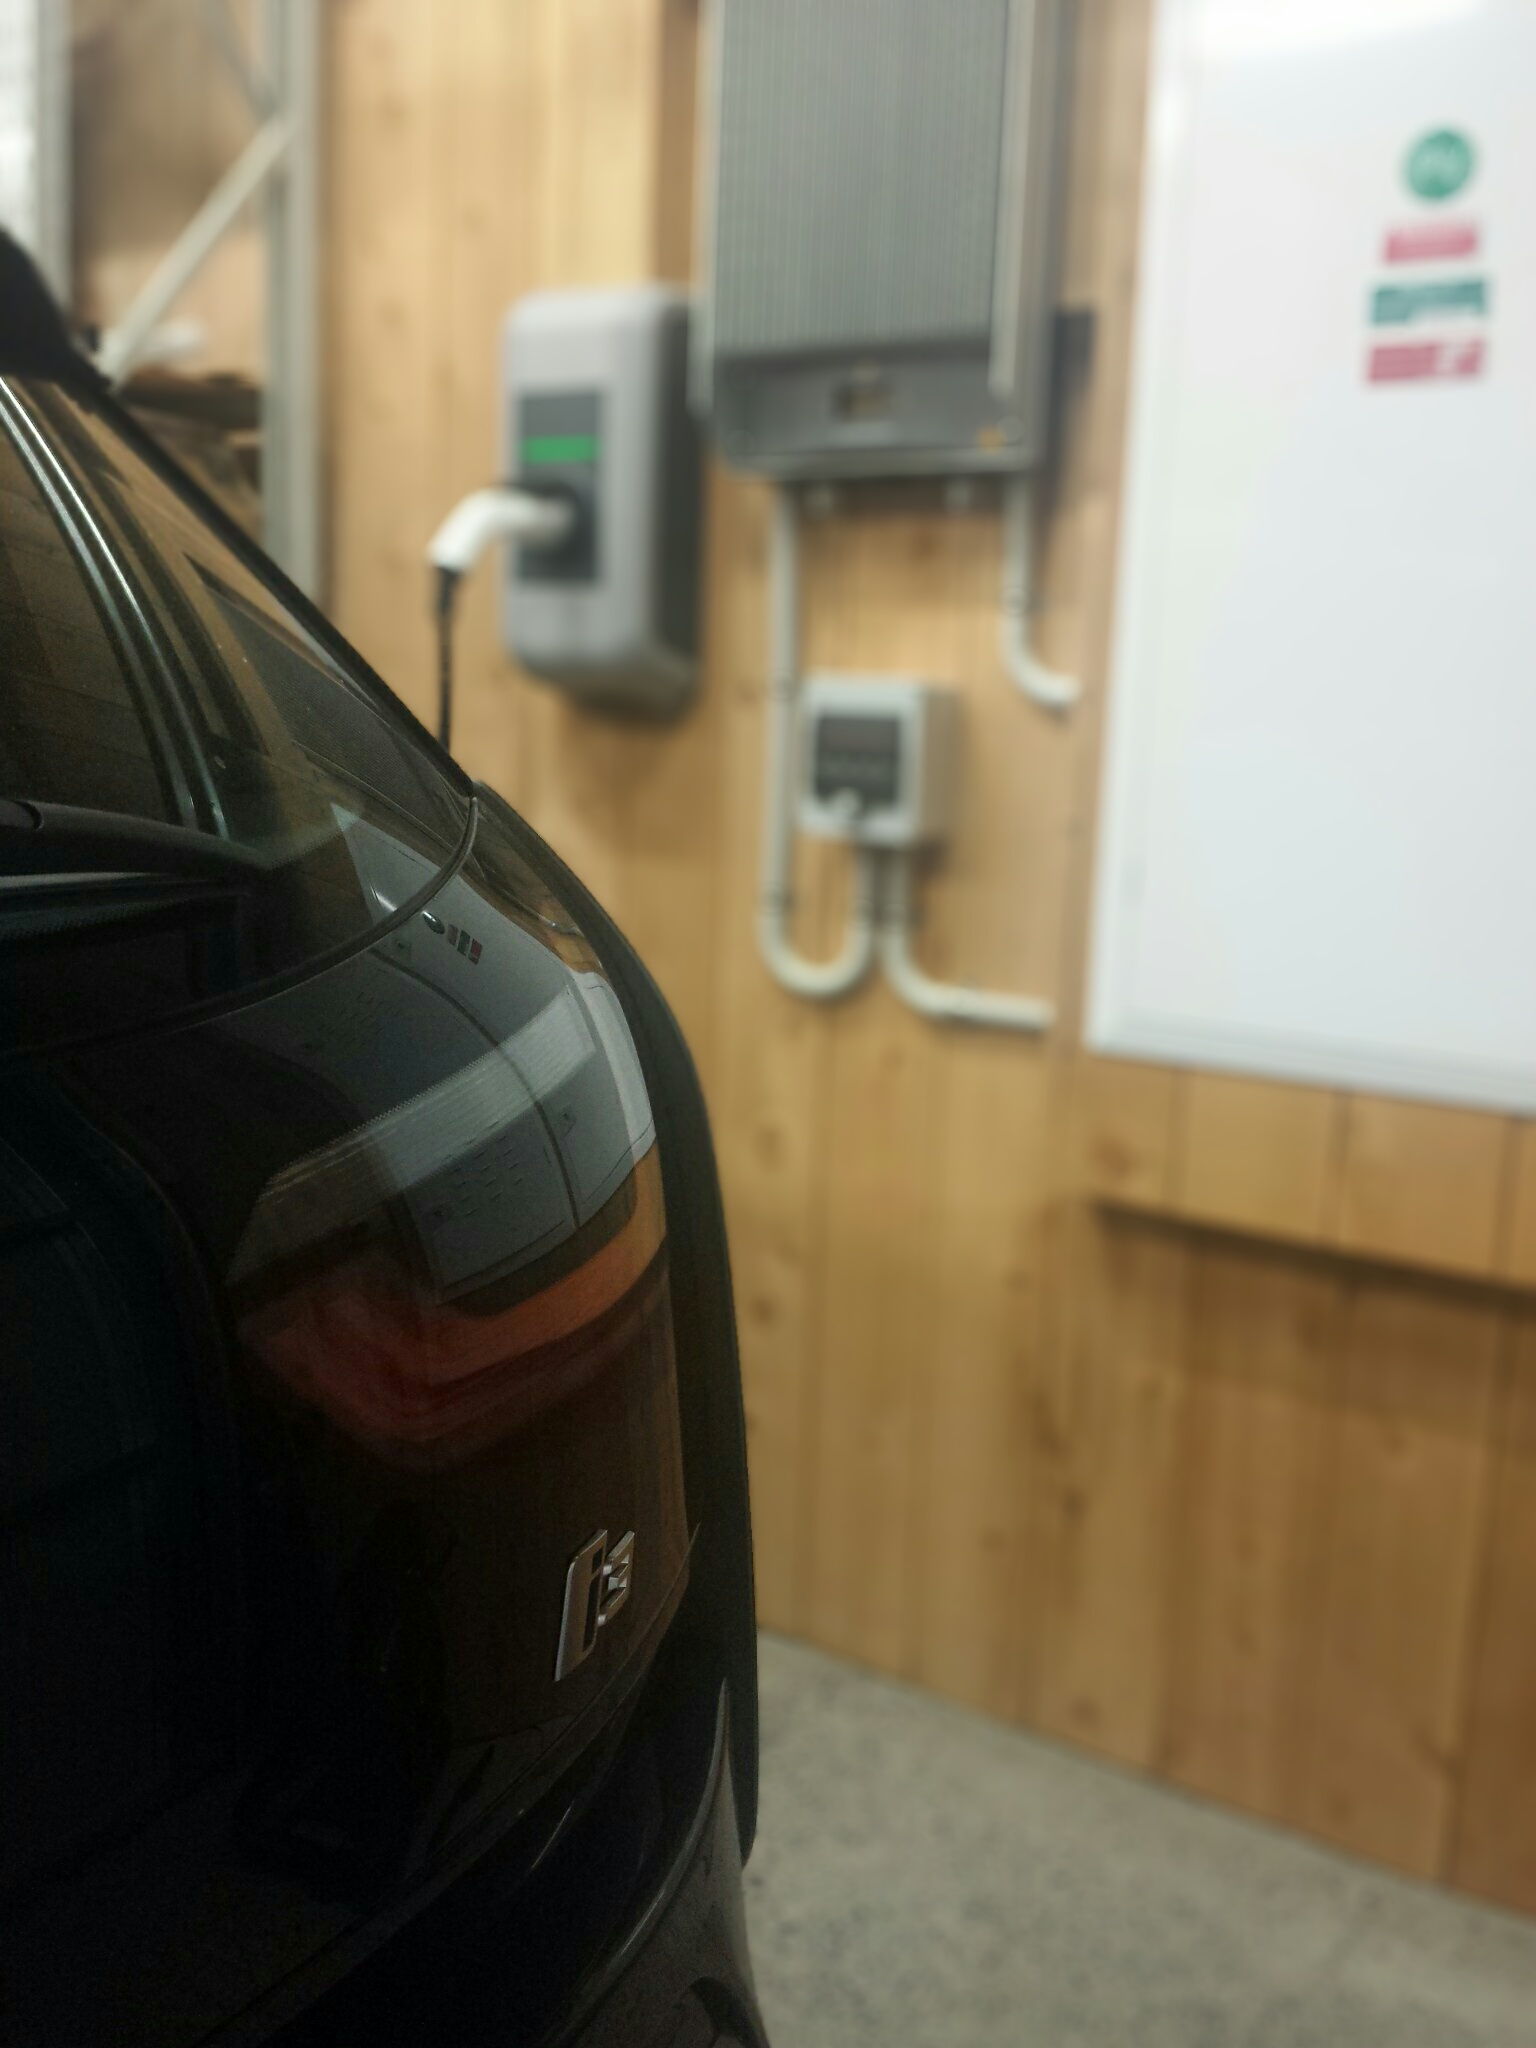 EV Charging at our first EV charger installation site.